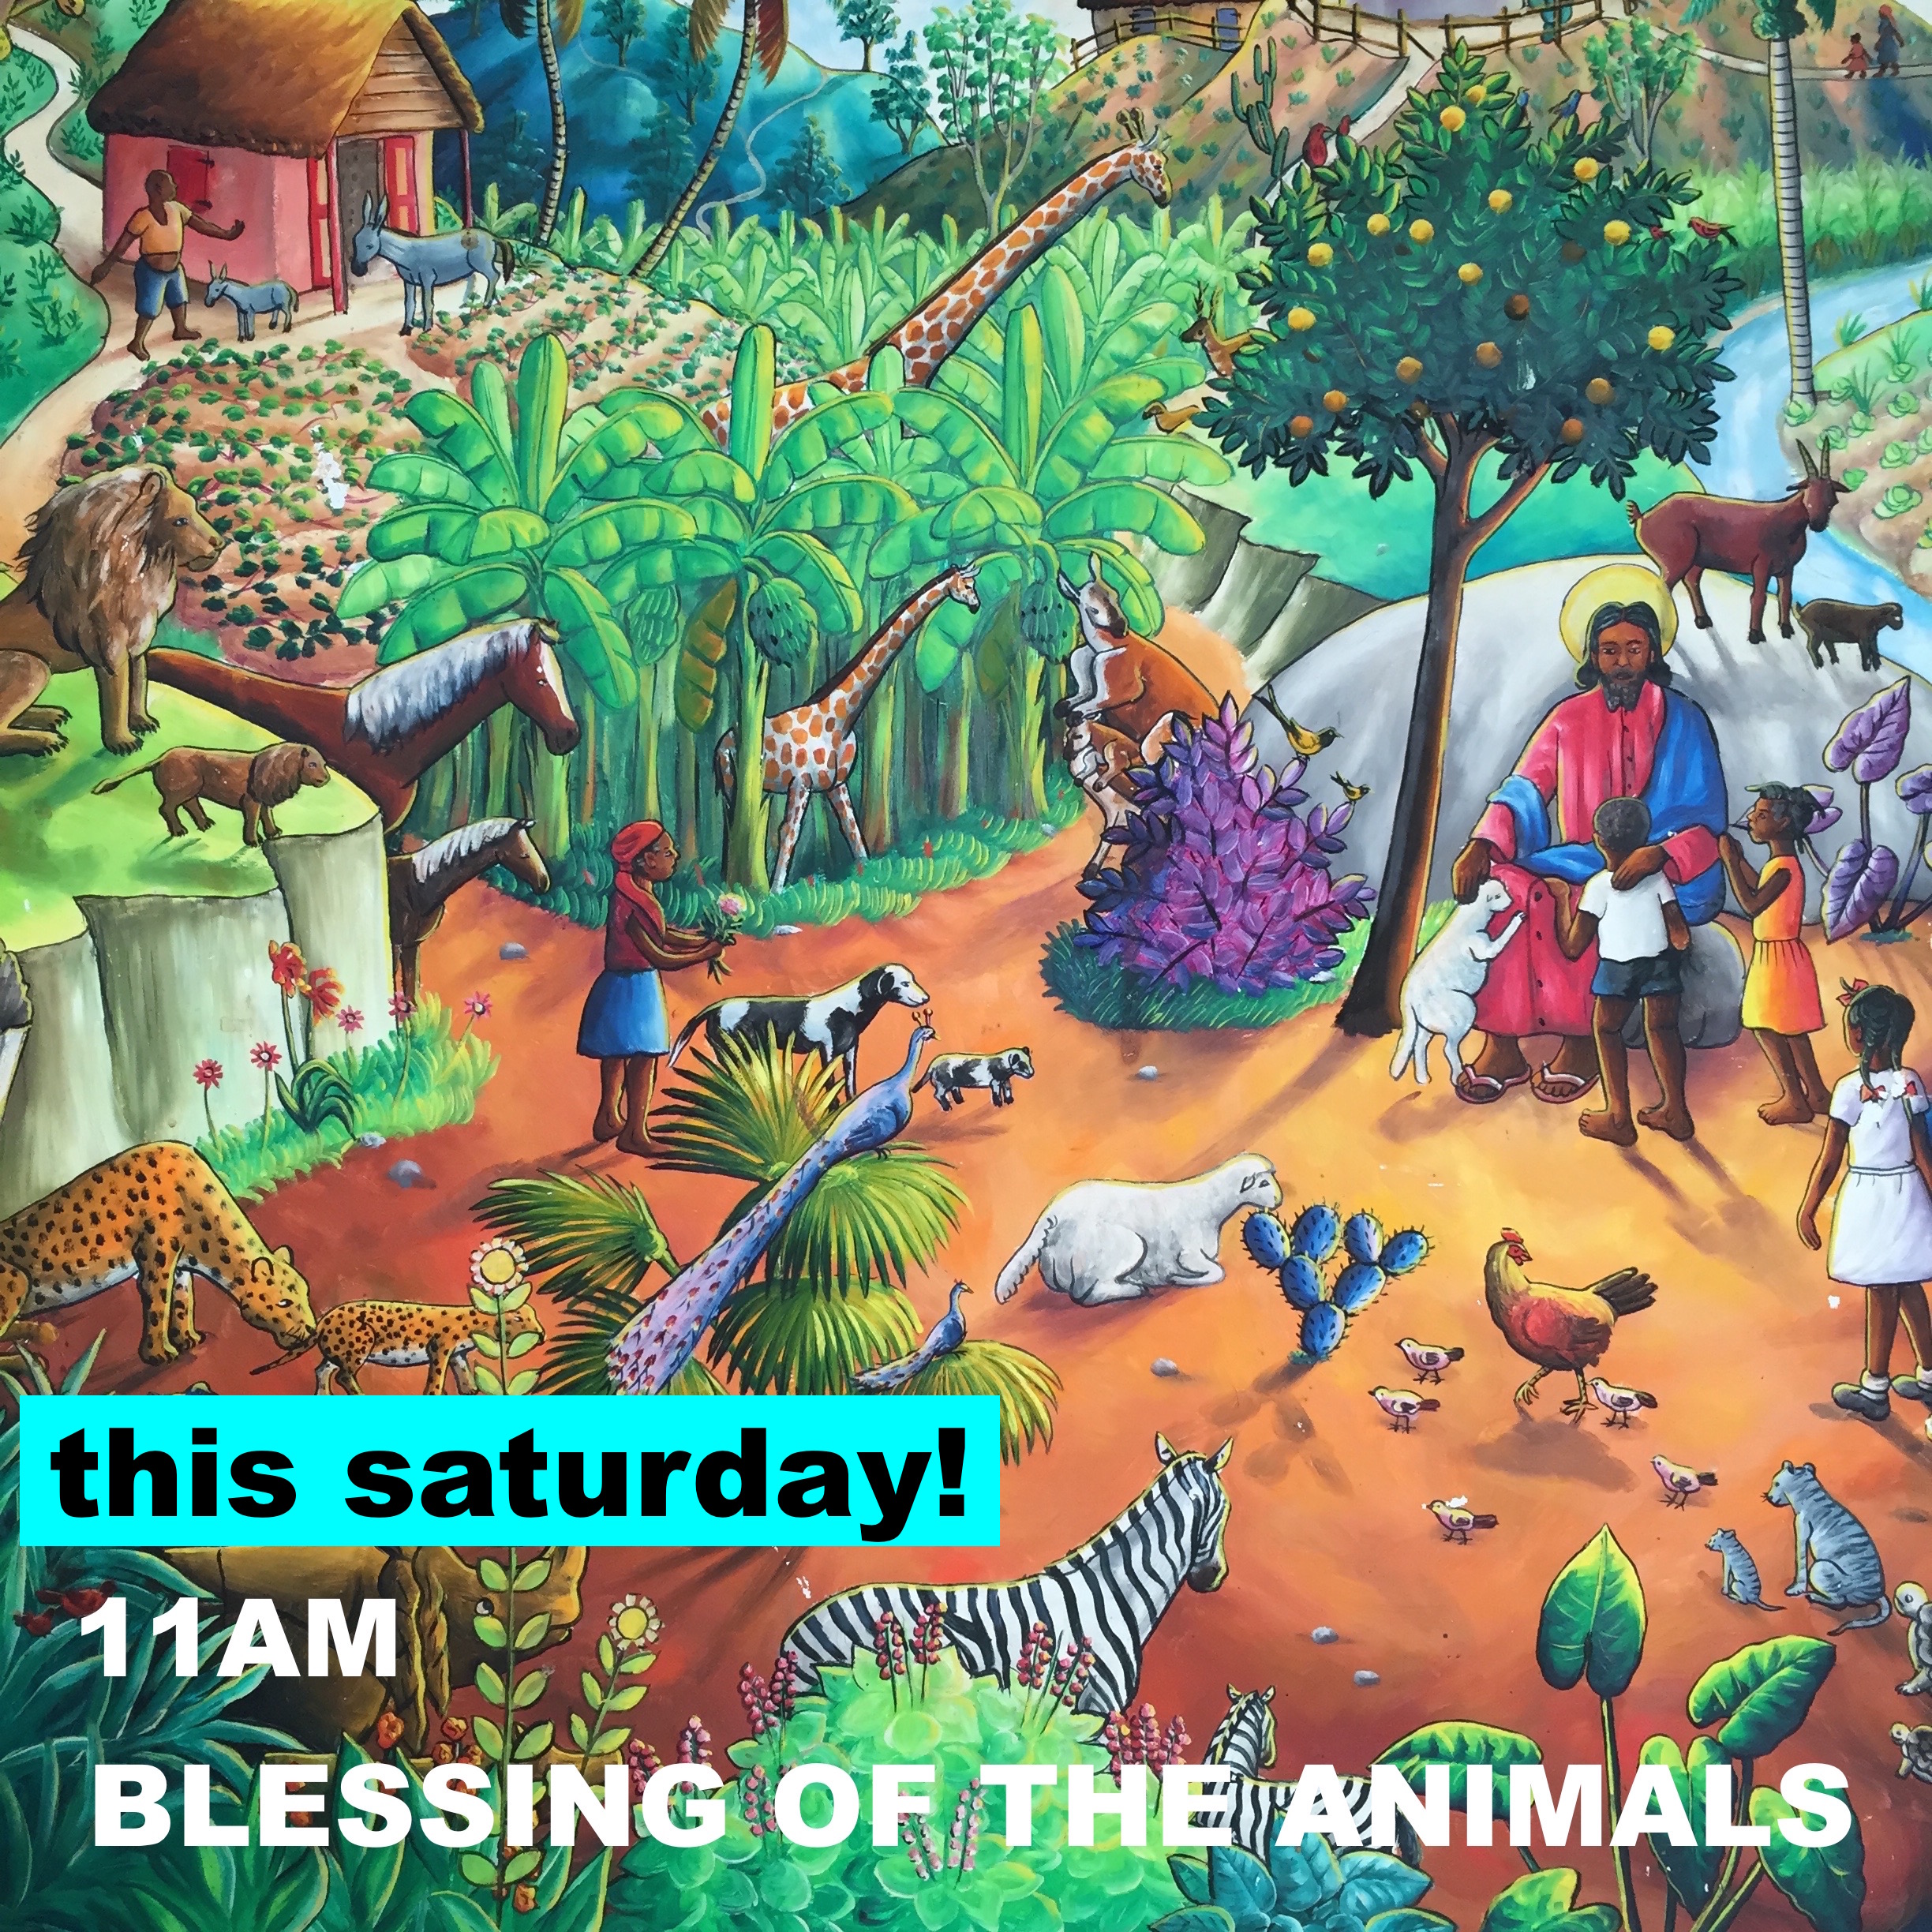 animal blessing copy.jpg